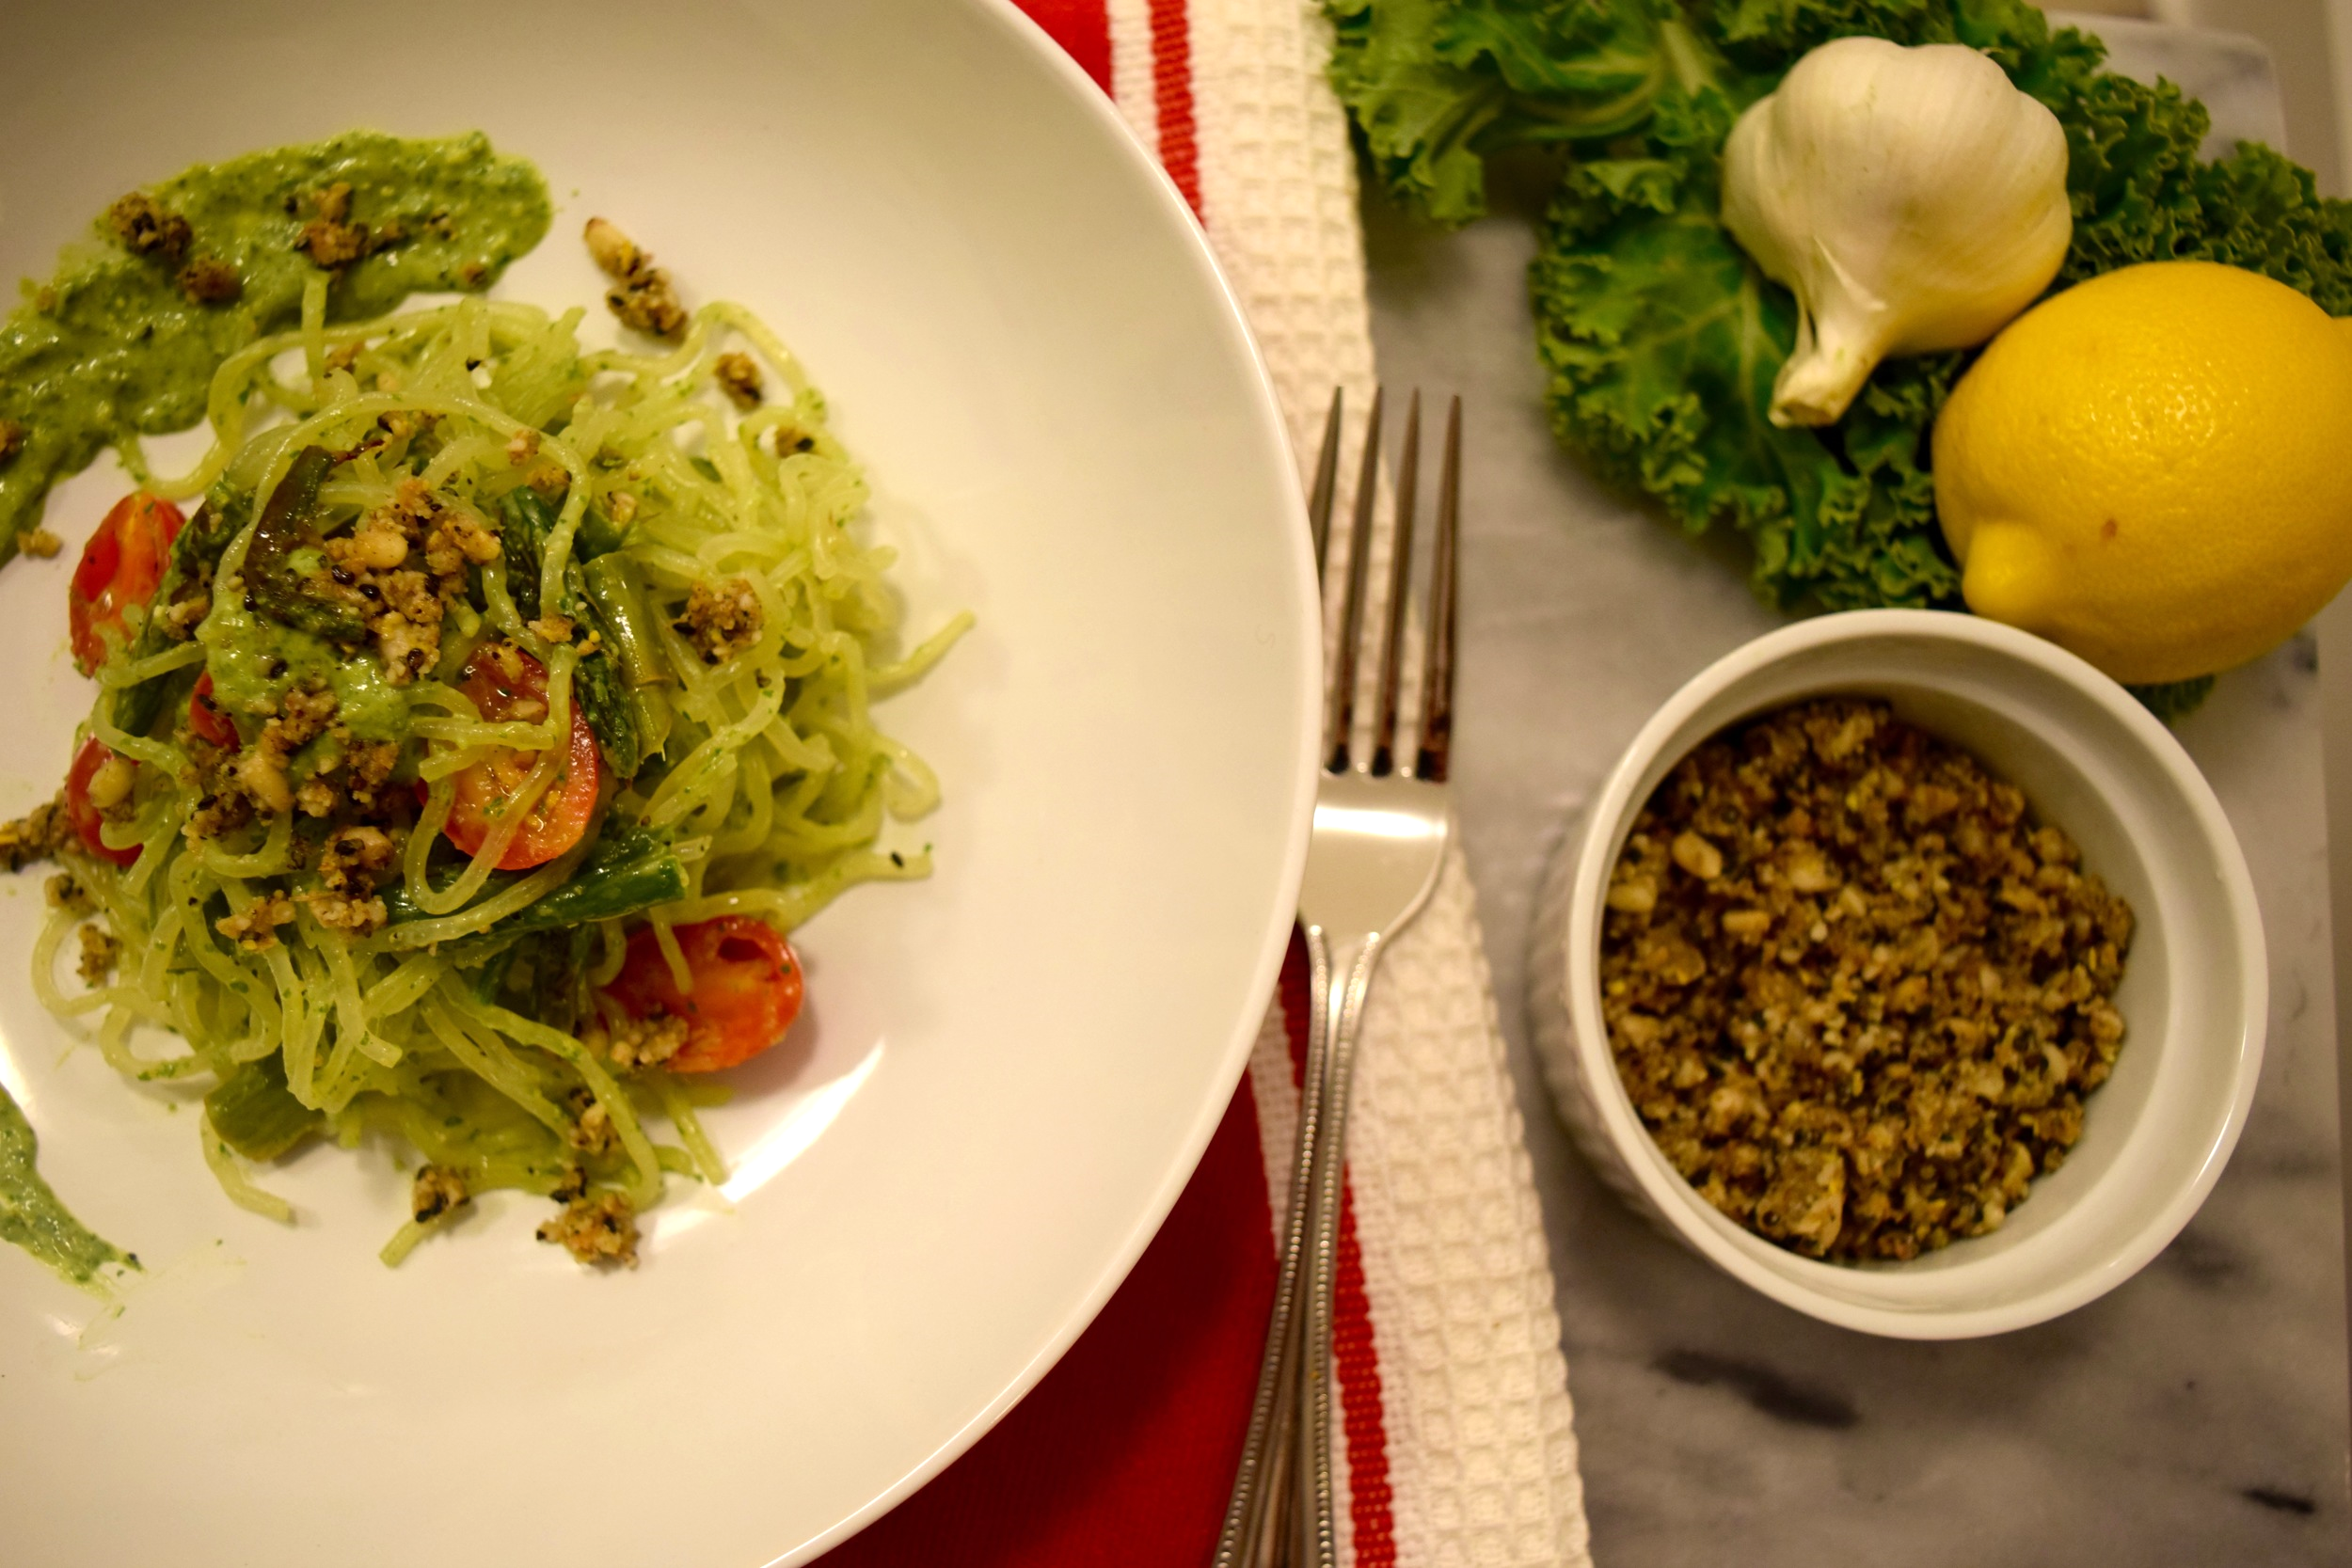 Kelp Noodles Kale Avocado Pesto Vegan Parm Recipe